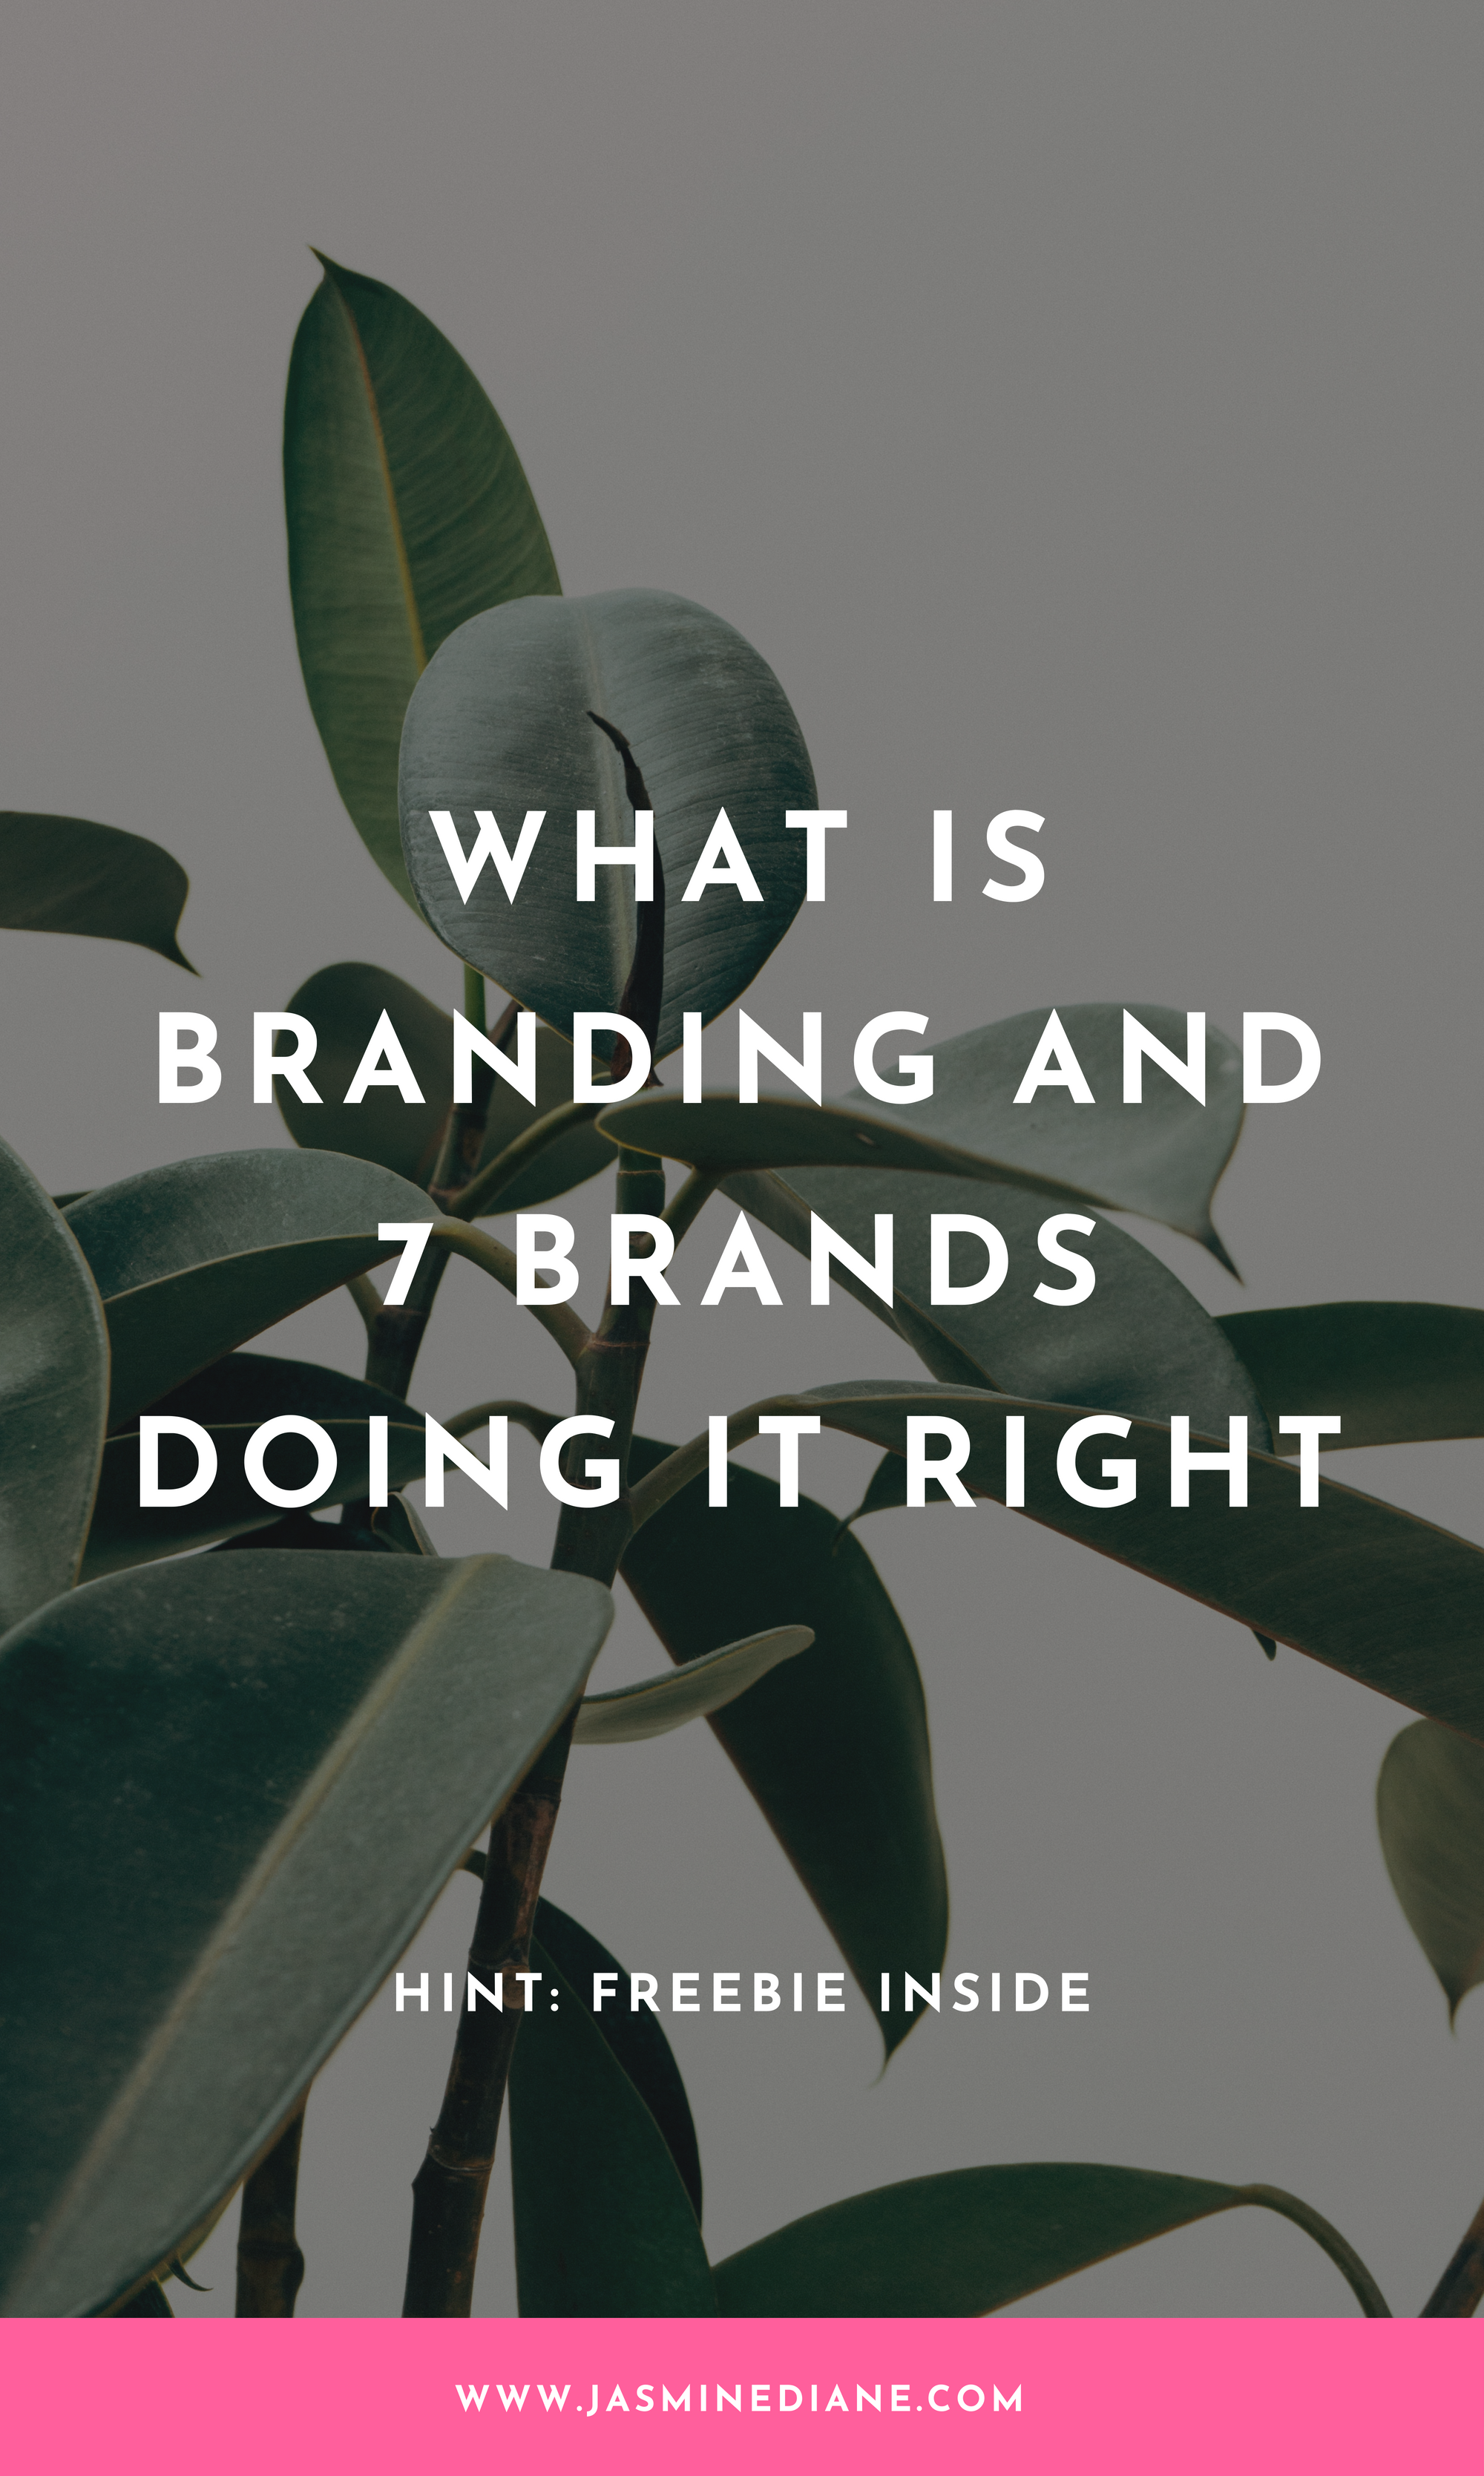 what is branding and 7 brands doing it right